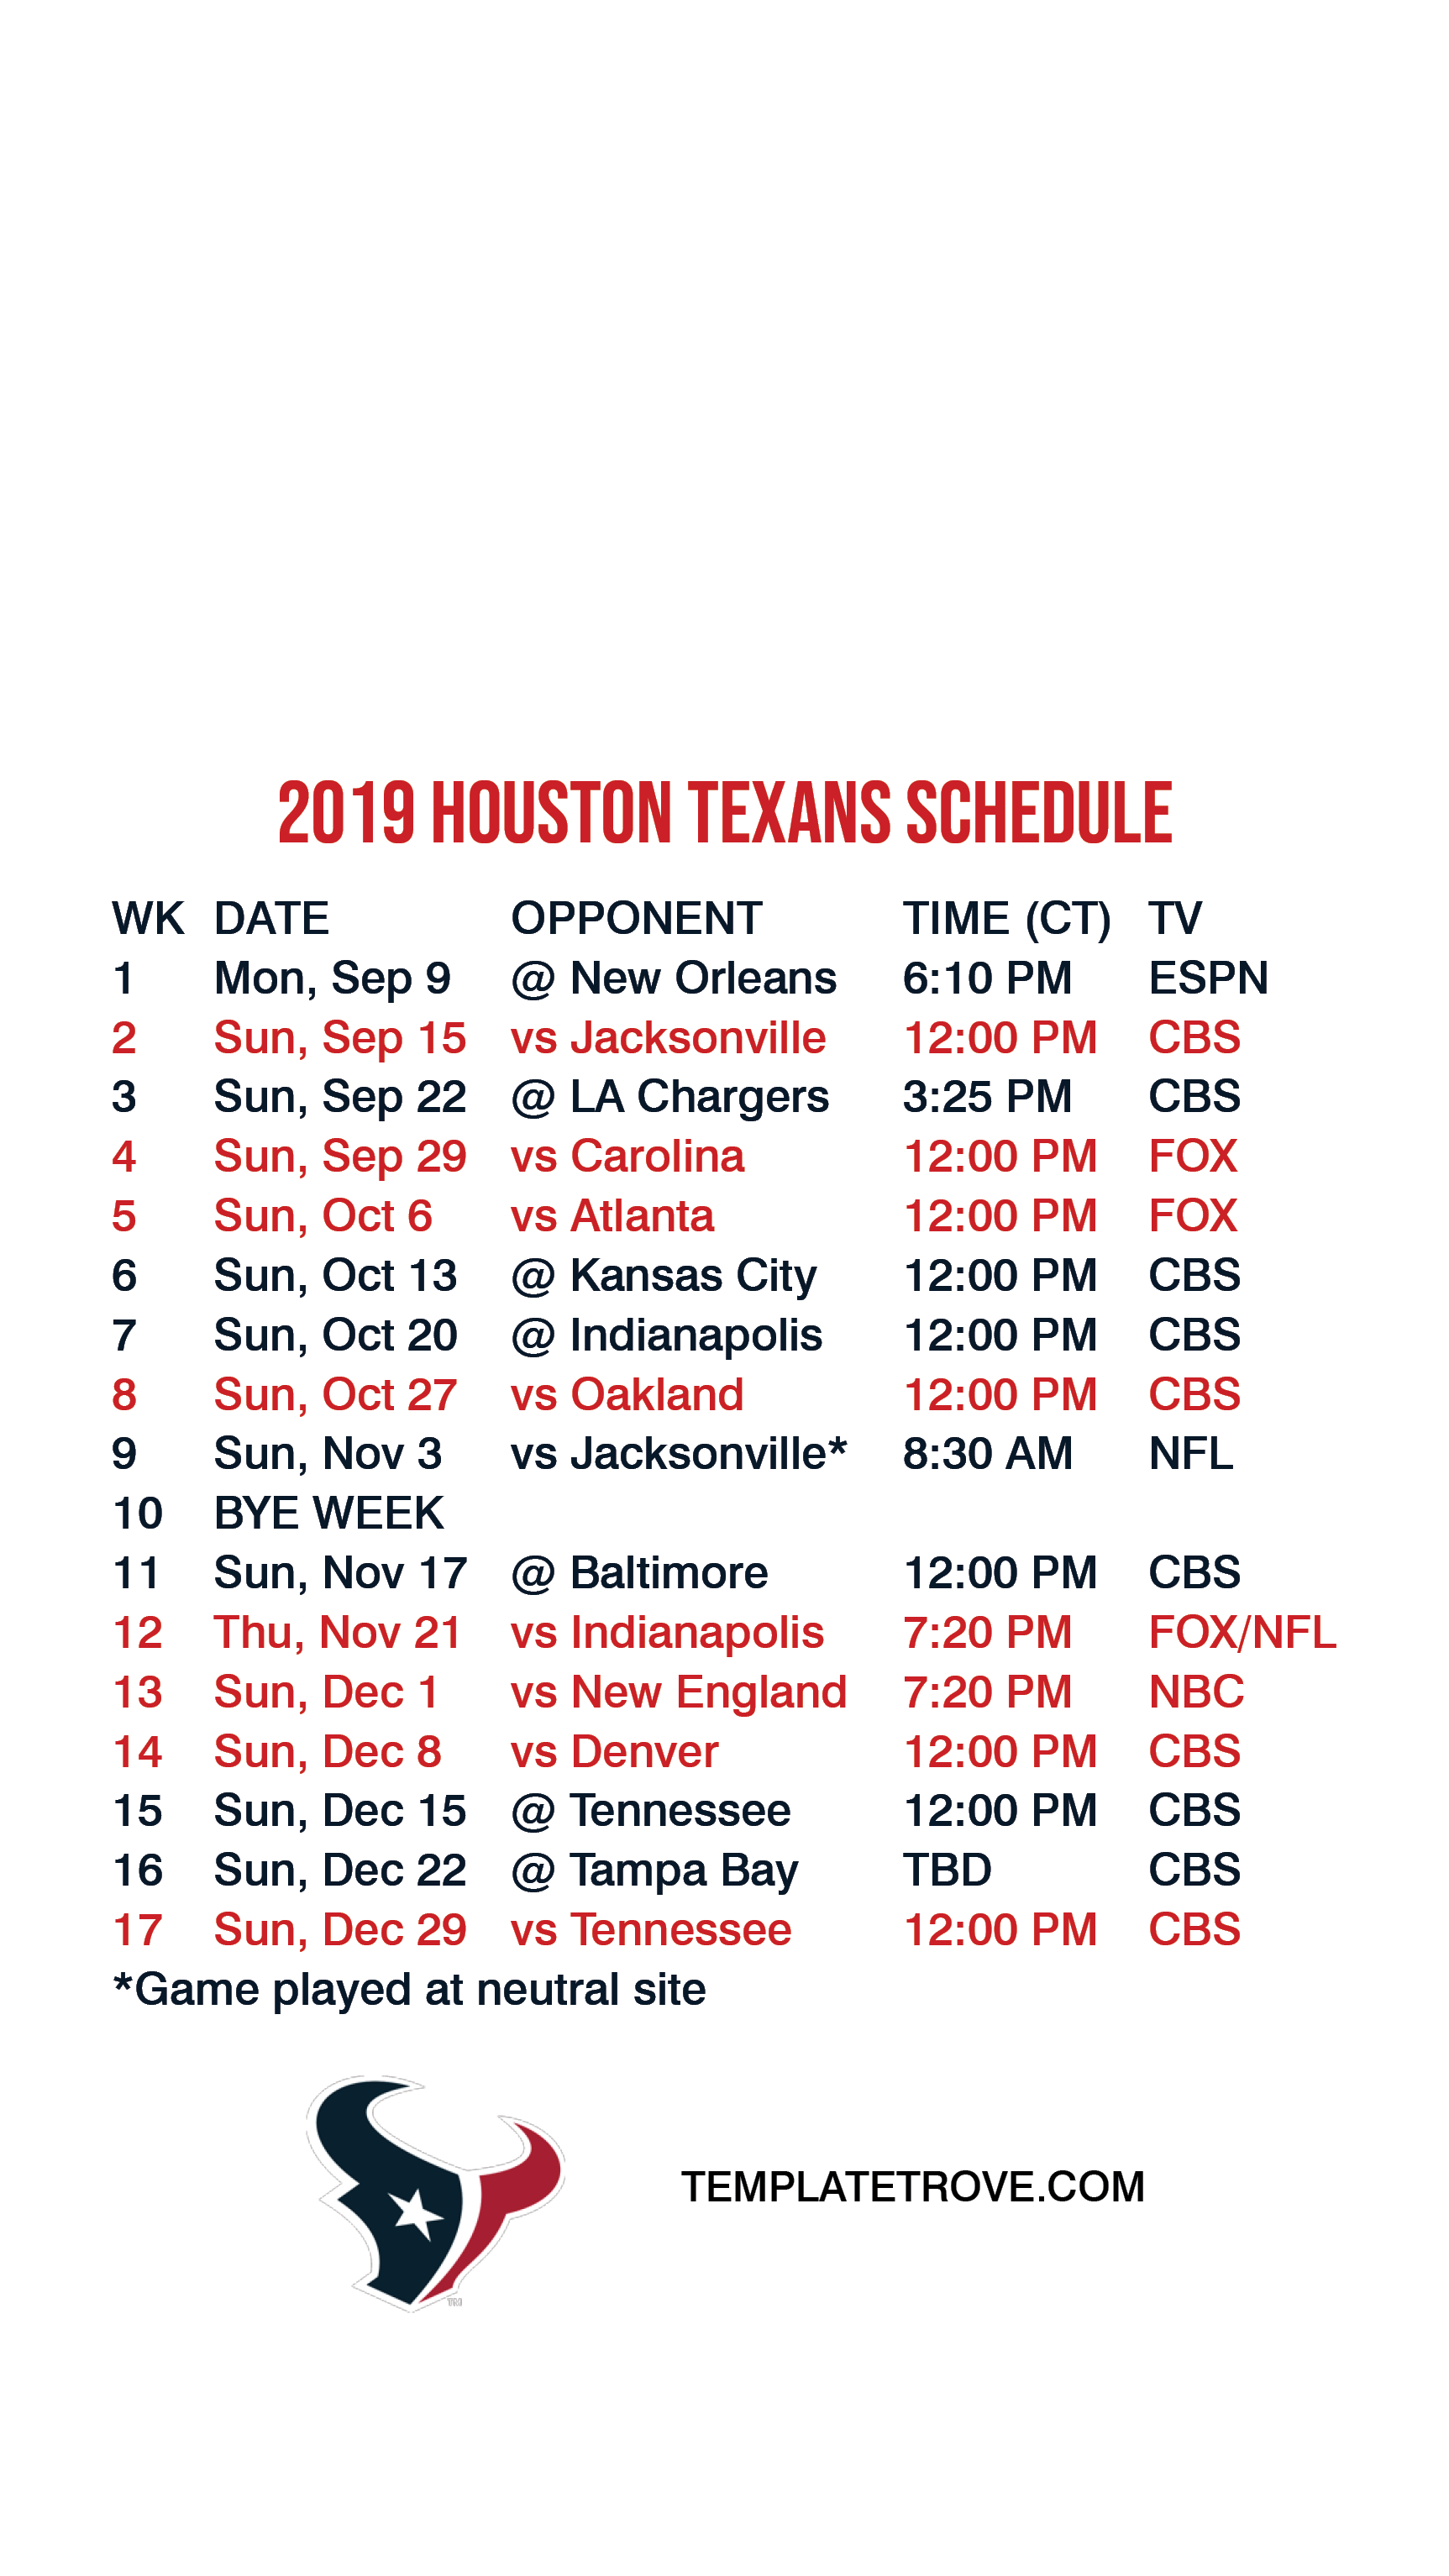 2019-2020 Houston Texans Lock Screen Schedule for iPhone 6